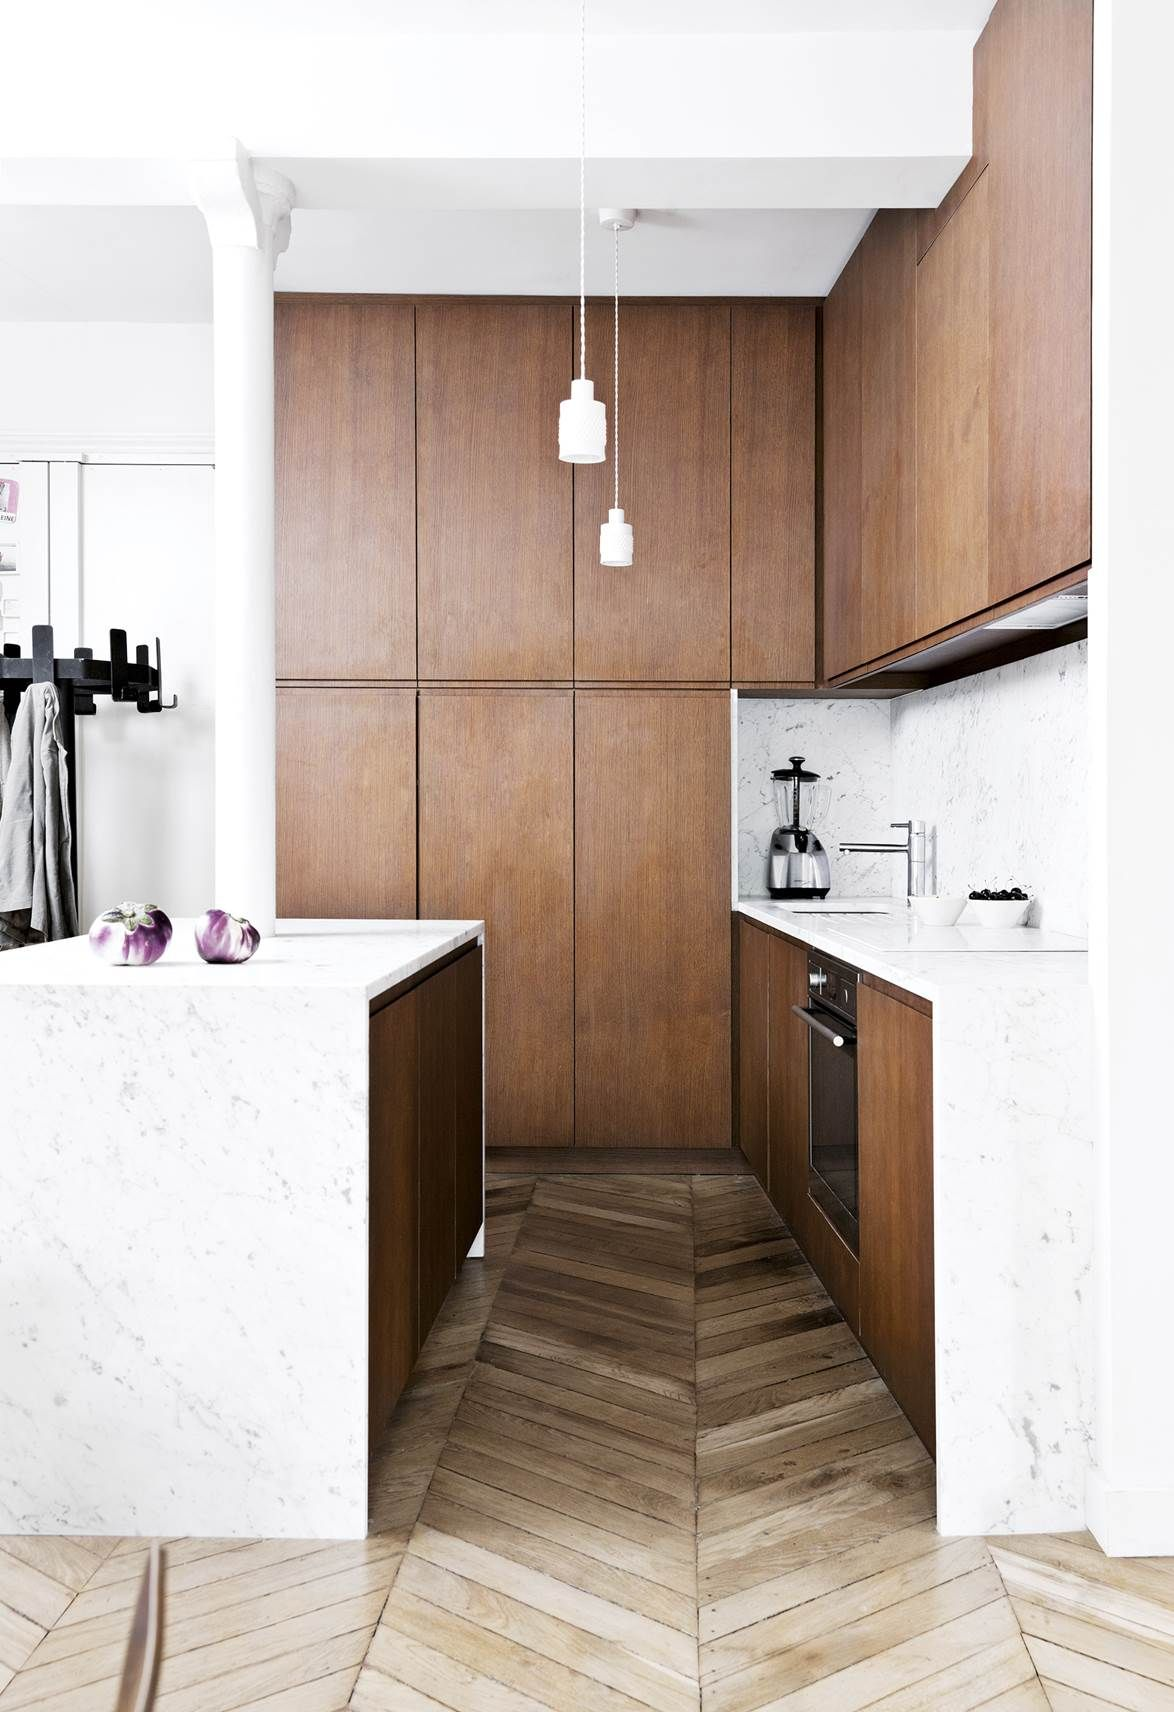 20 kitchens with clever design ideas to steal Time to cook up a new look? Be inspired to refresh and renovate the heart of your home with these 20 clever kitchen design ideas.